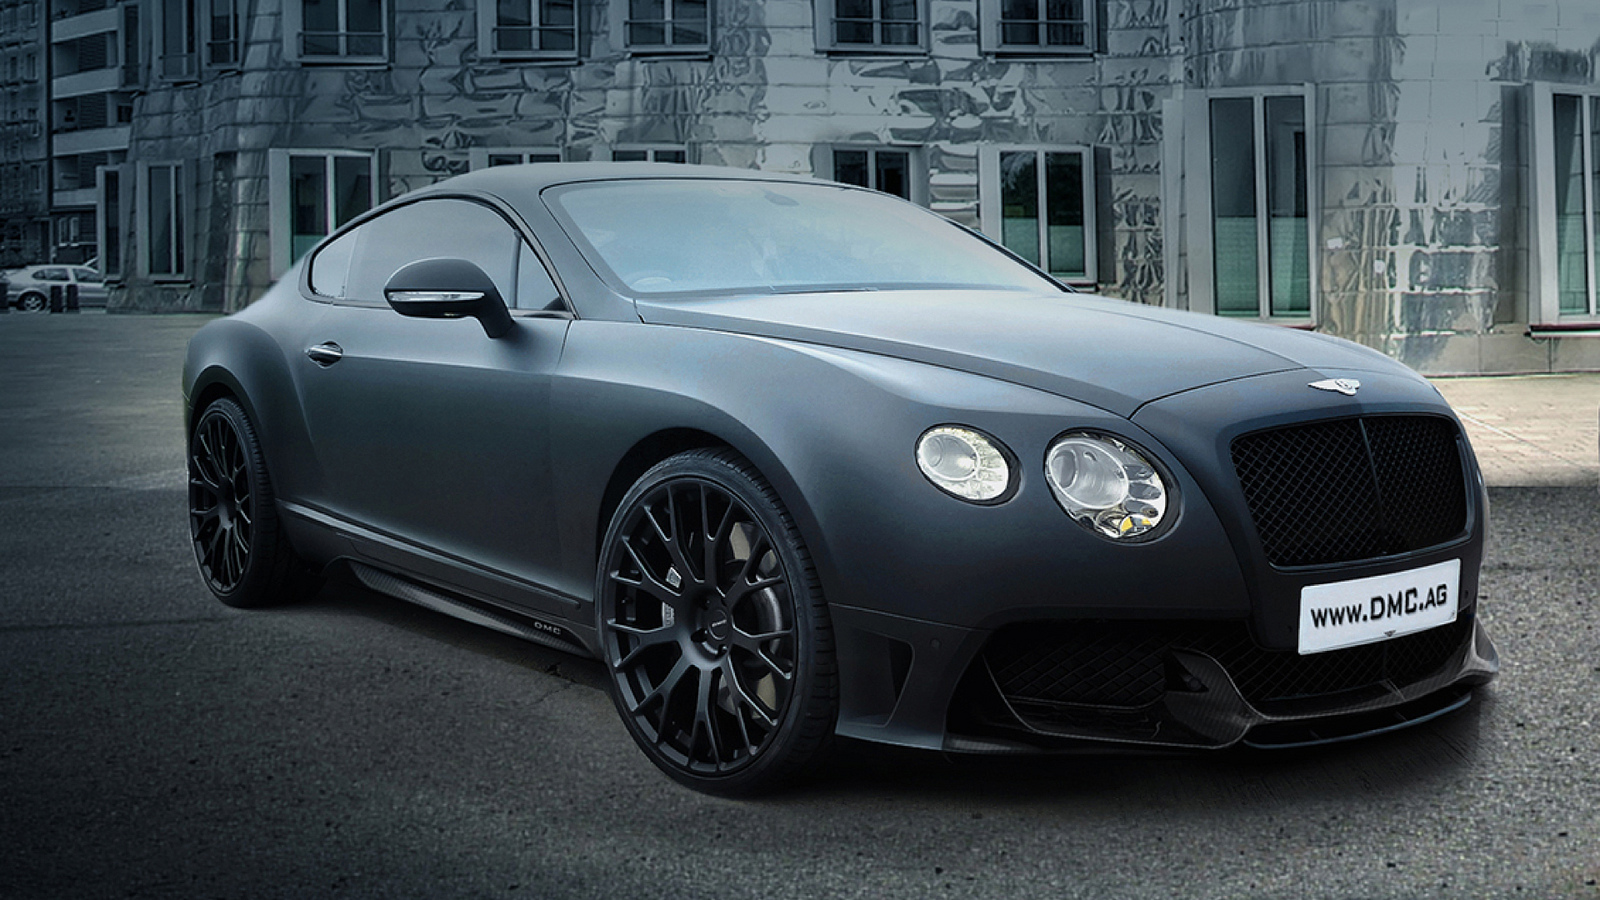 bentley continental gt chrome with Bentley Gt V8 Duro China Edition By Dmc 74642 on Chrysler 300 2012 With 22 Inch Rims F72d5fe4e6a99aa3 in addition 22 together with 6508867469 as well 17 likewise 24.